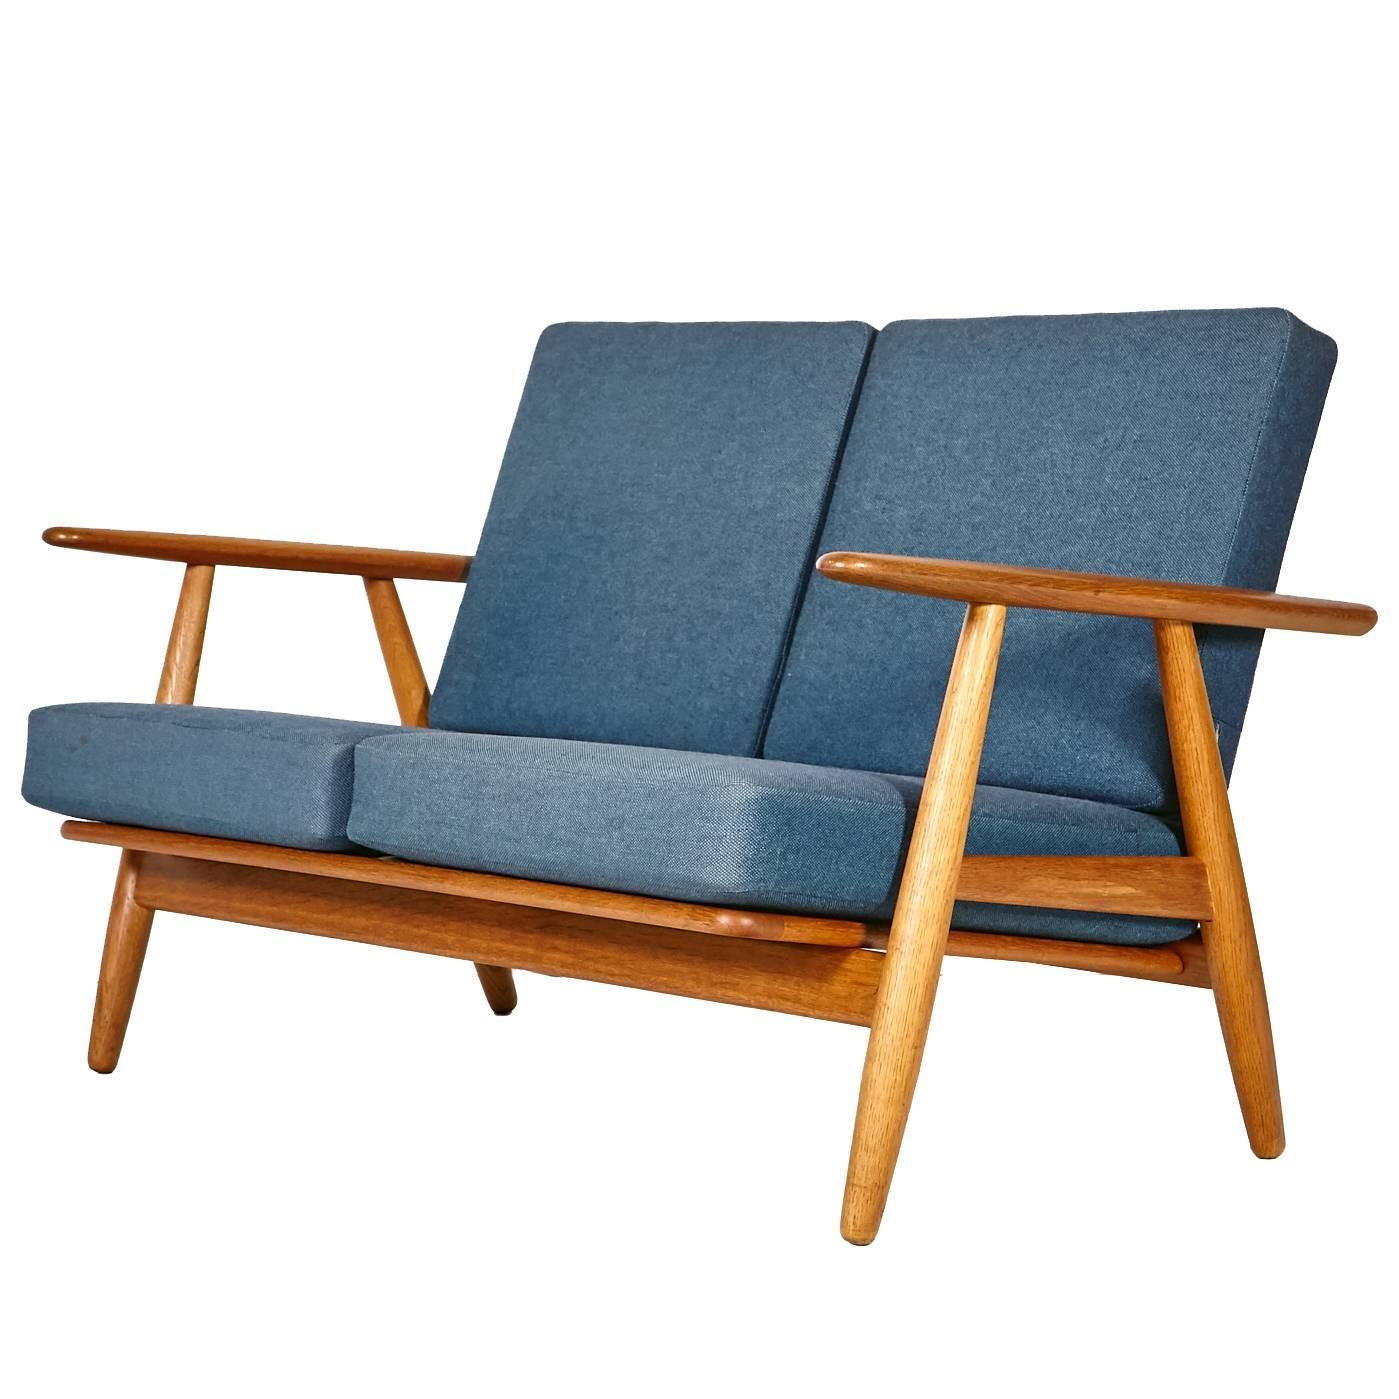 Hans J. Wegner GE 240 Cigar Sofa In Oak For GETAMA For Sale At 1stdibs